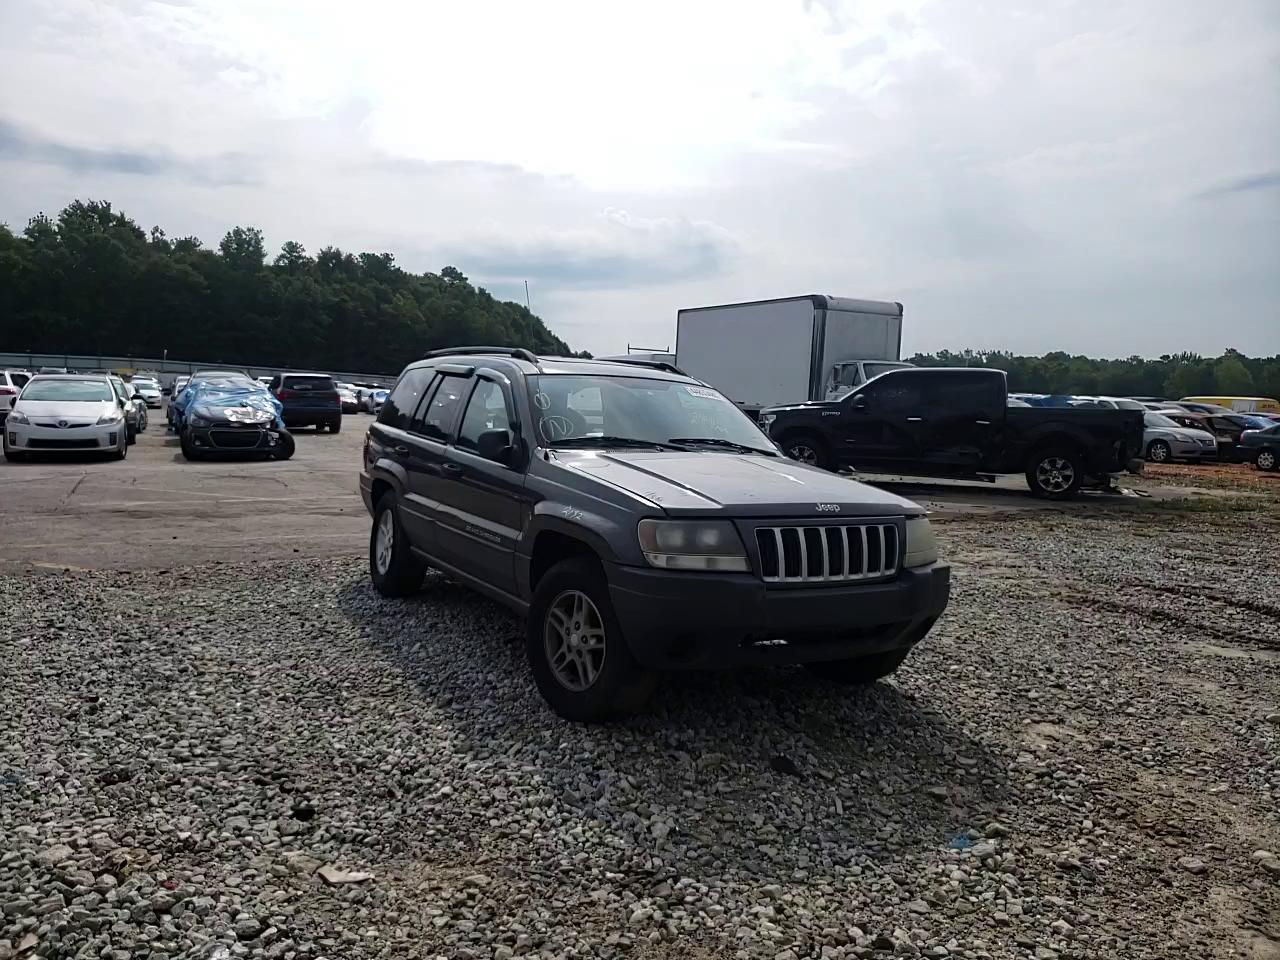 Jeep Grand Cherokee salvage cars for sale: 2004 Jeep Grand Cherokee